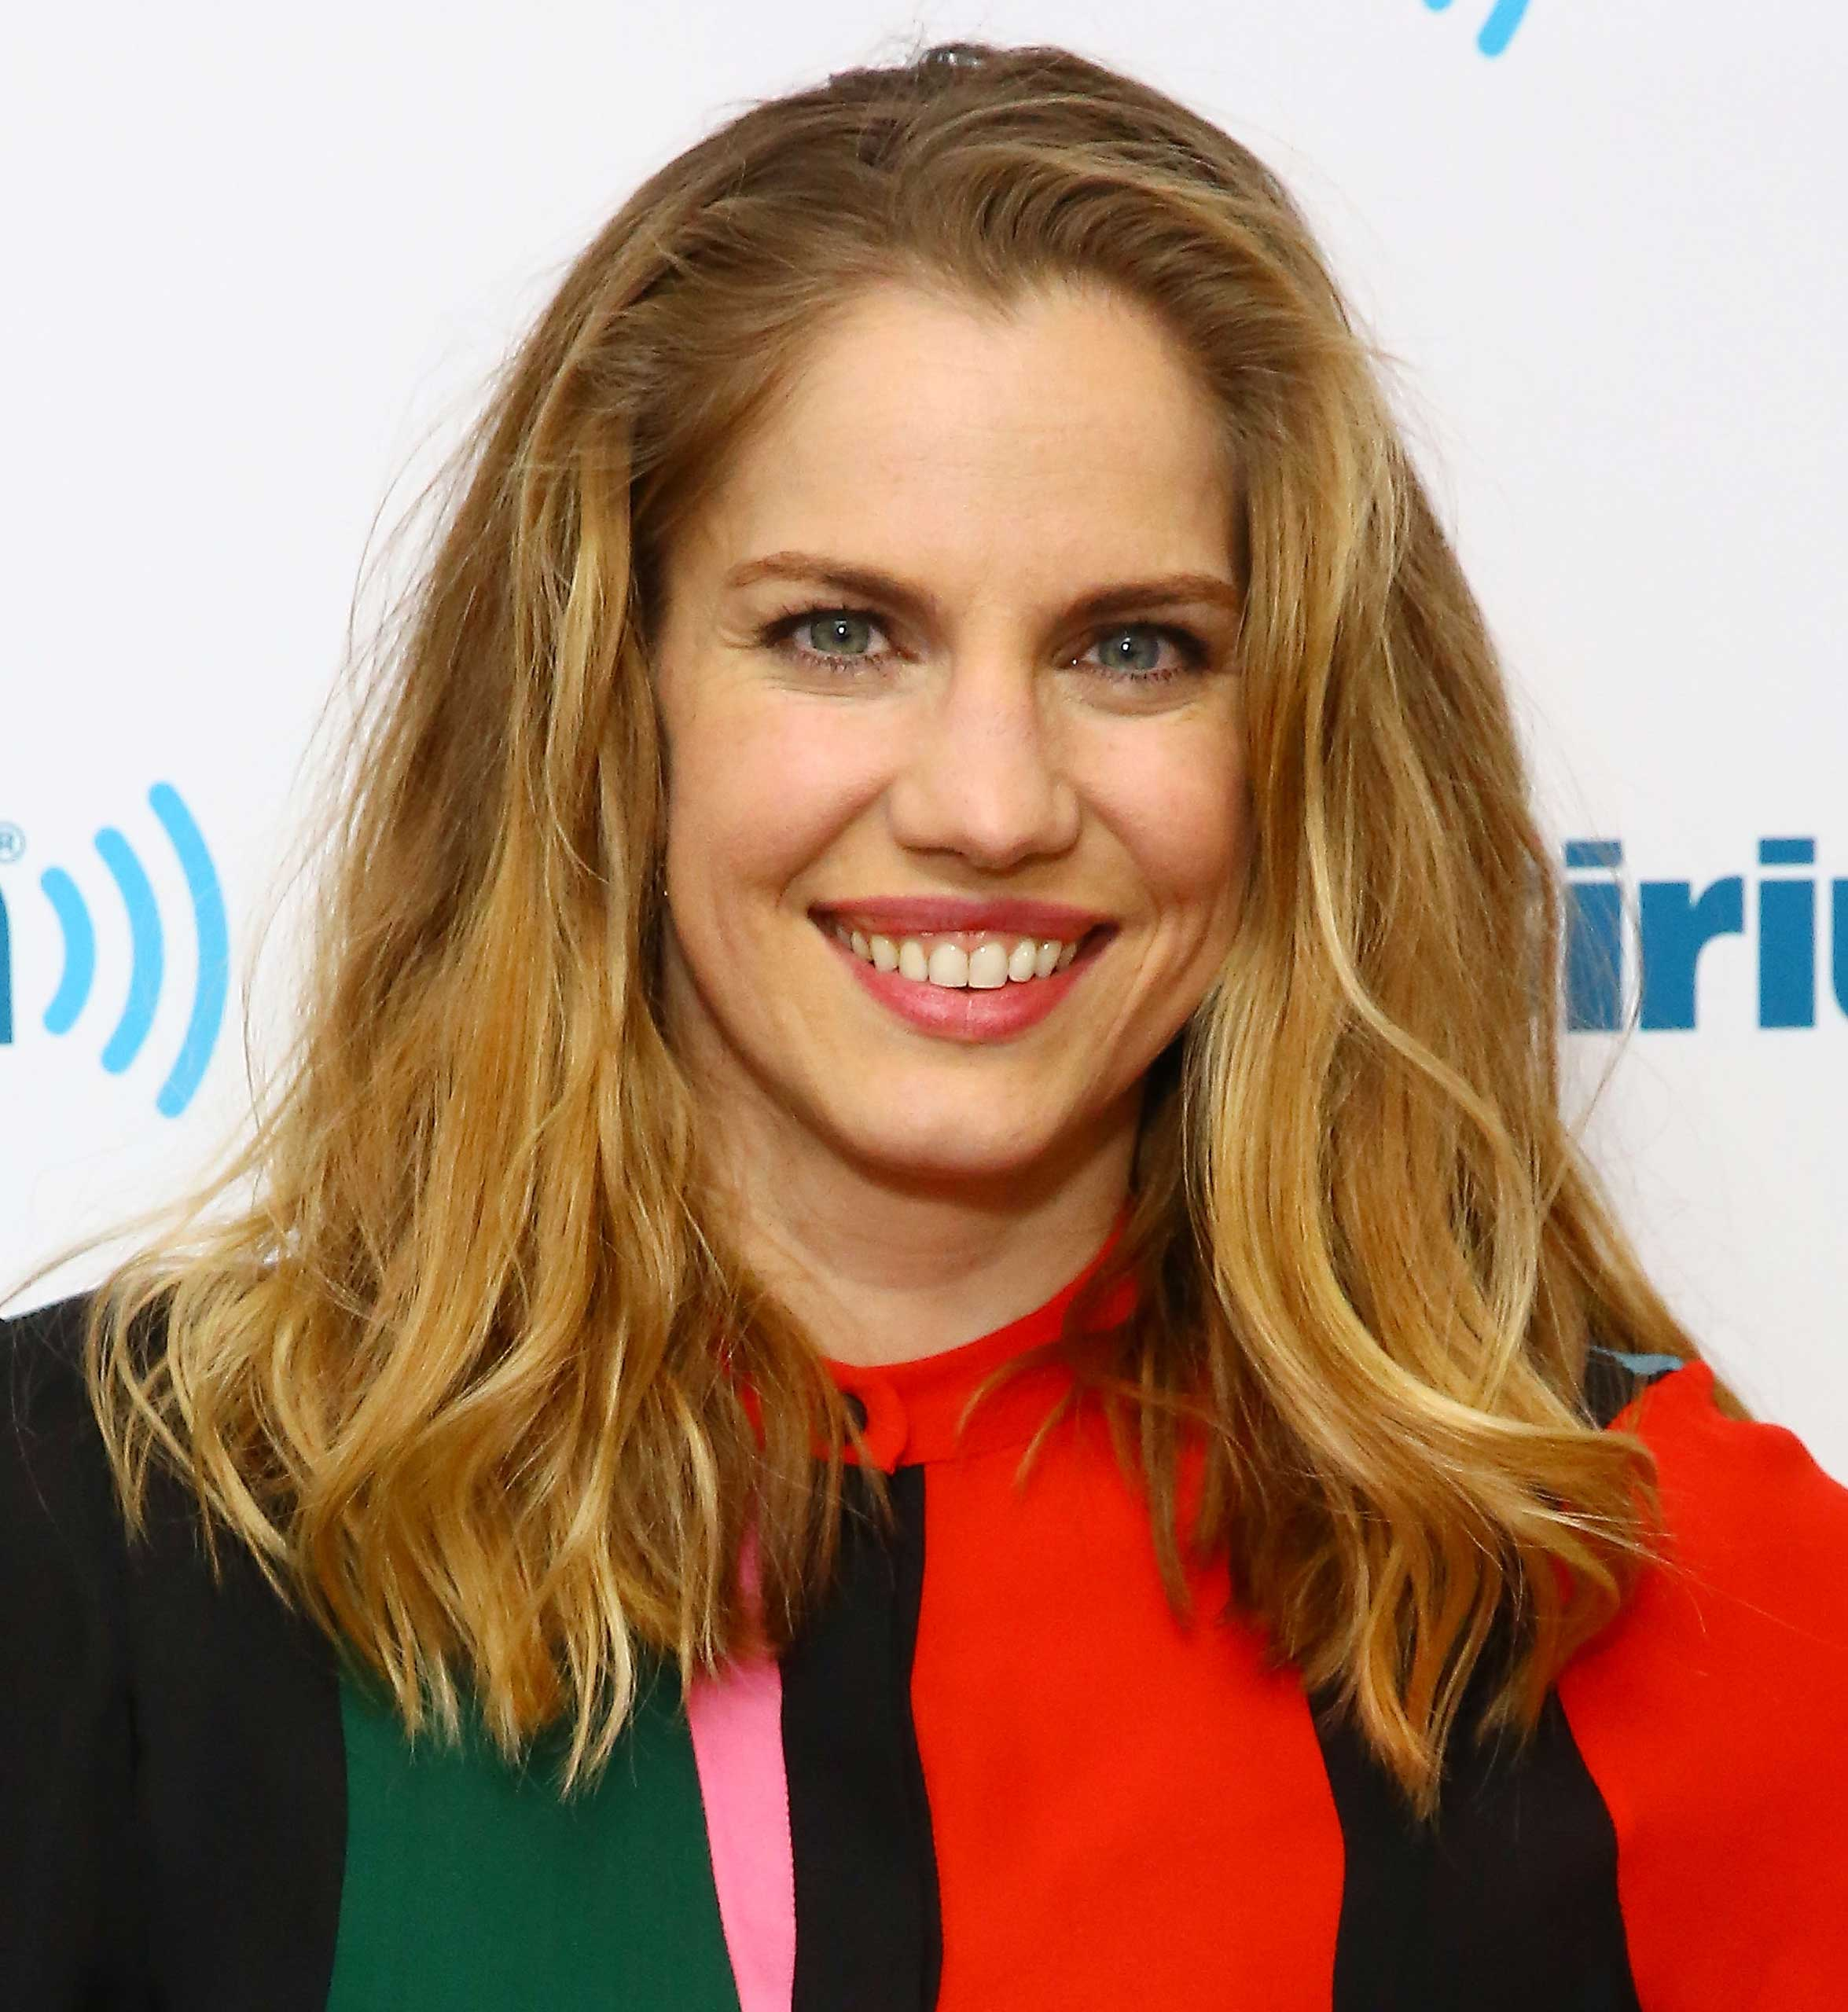 Actress Anna Chlumsky visits the SiriusXM Studios on  in New York City on April 16, 2015.